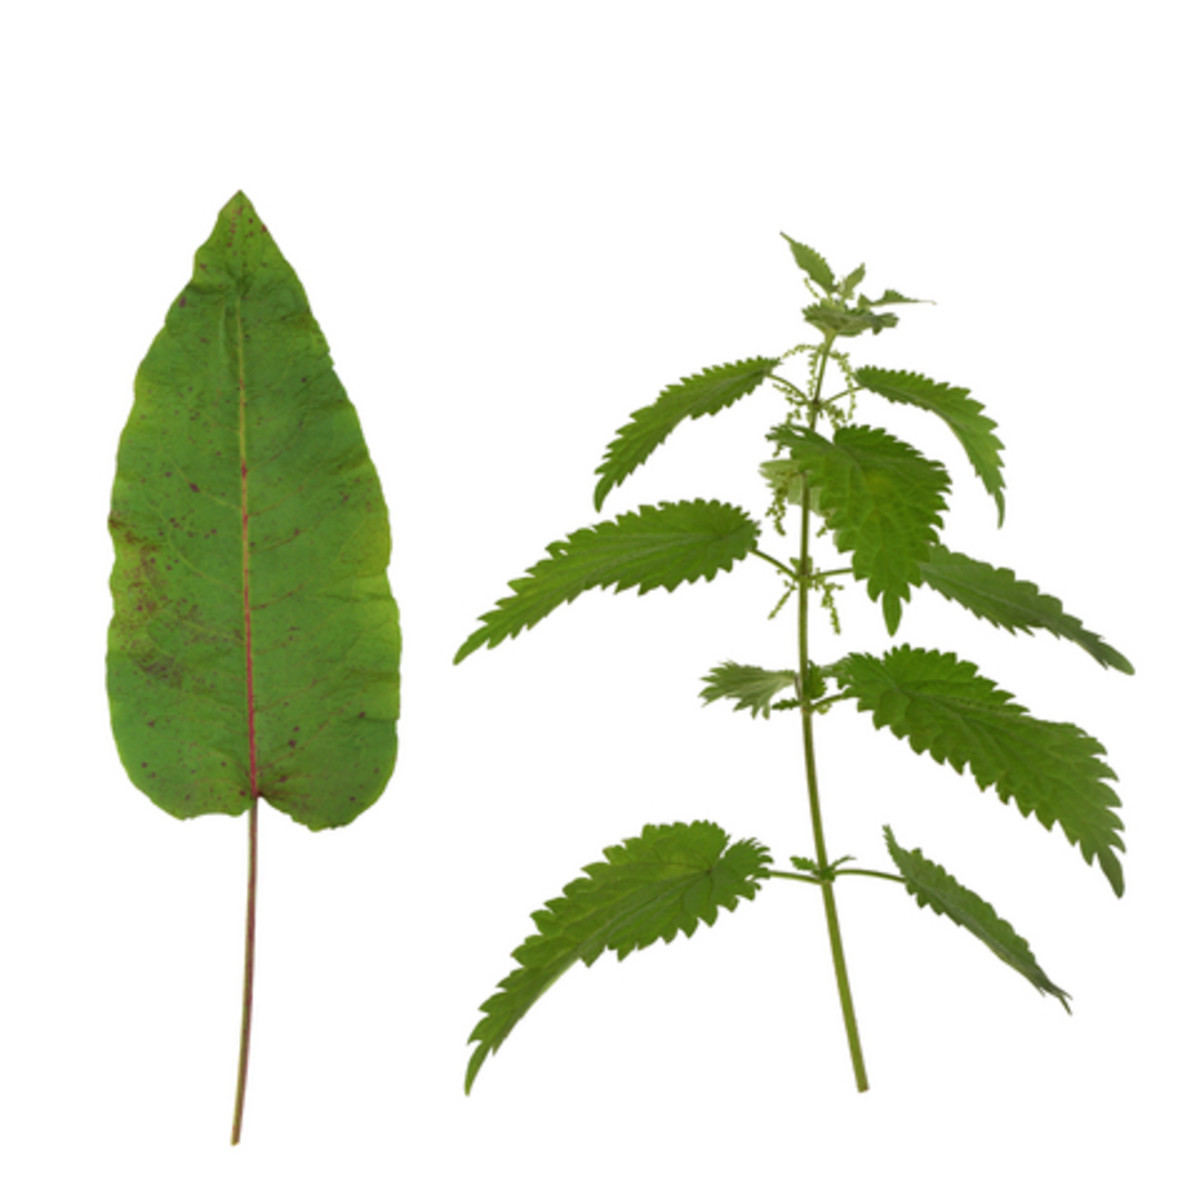 dock leaf and nettle